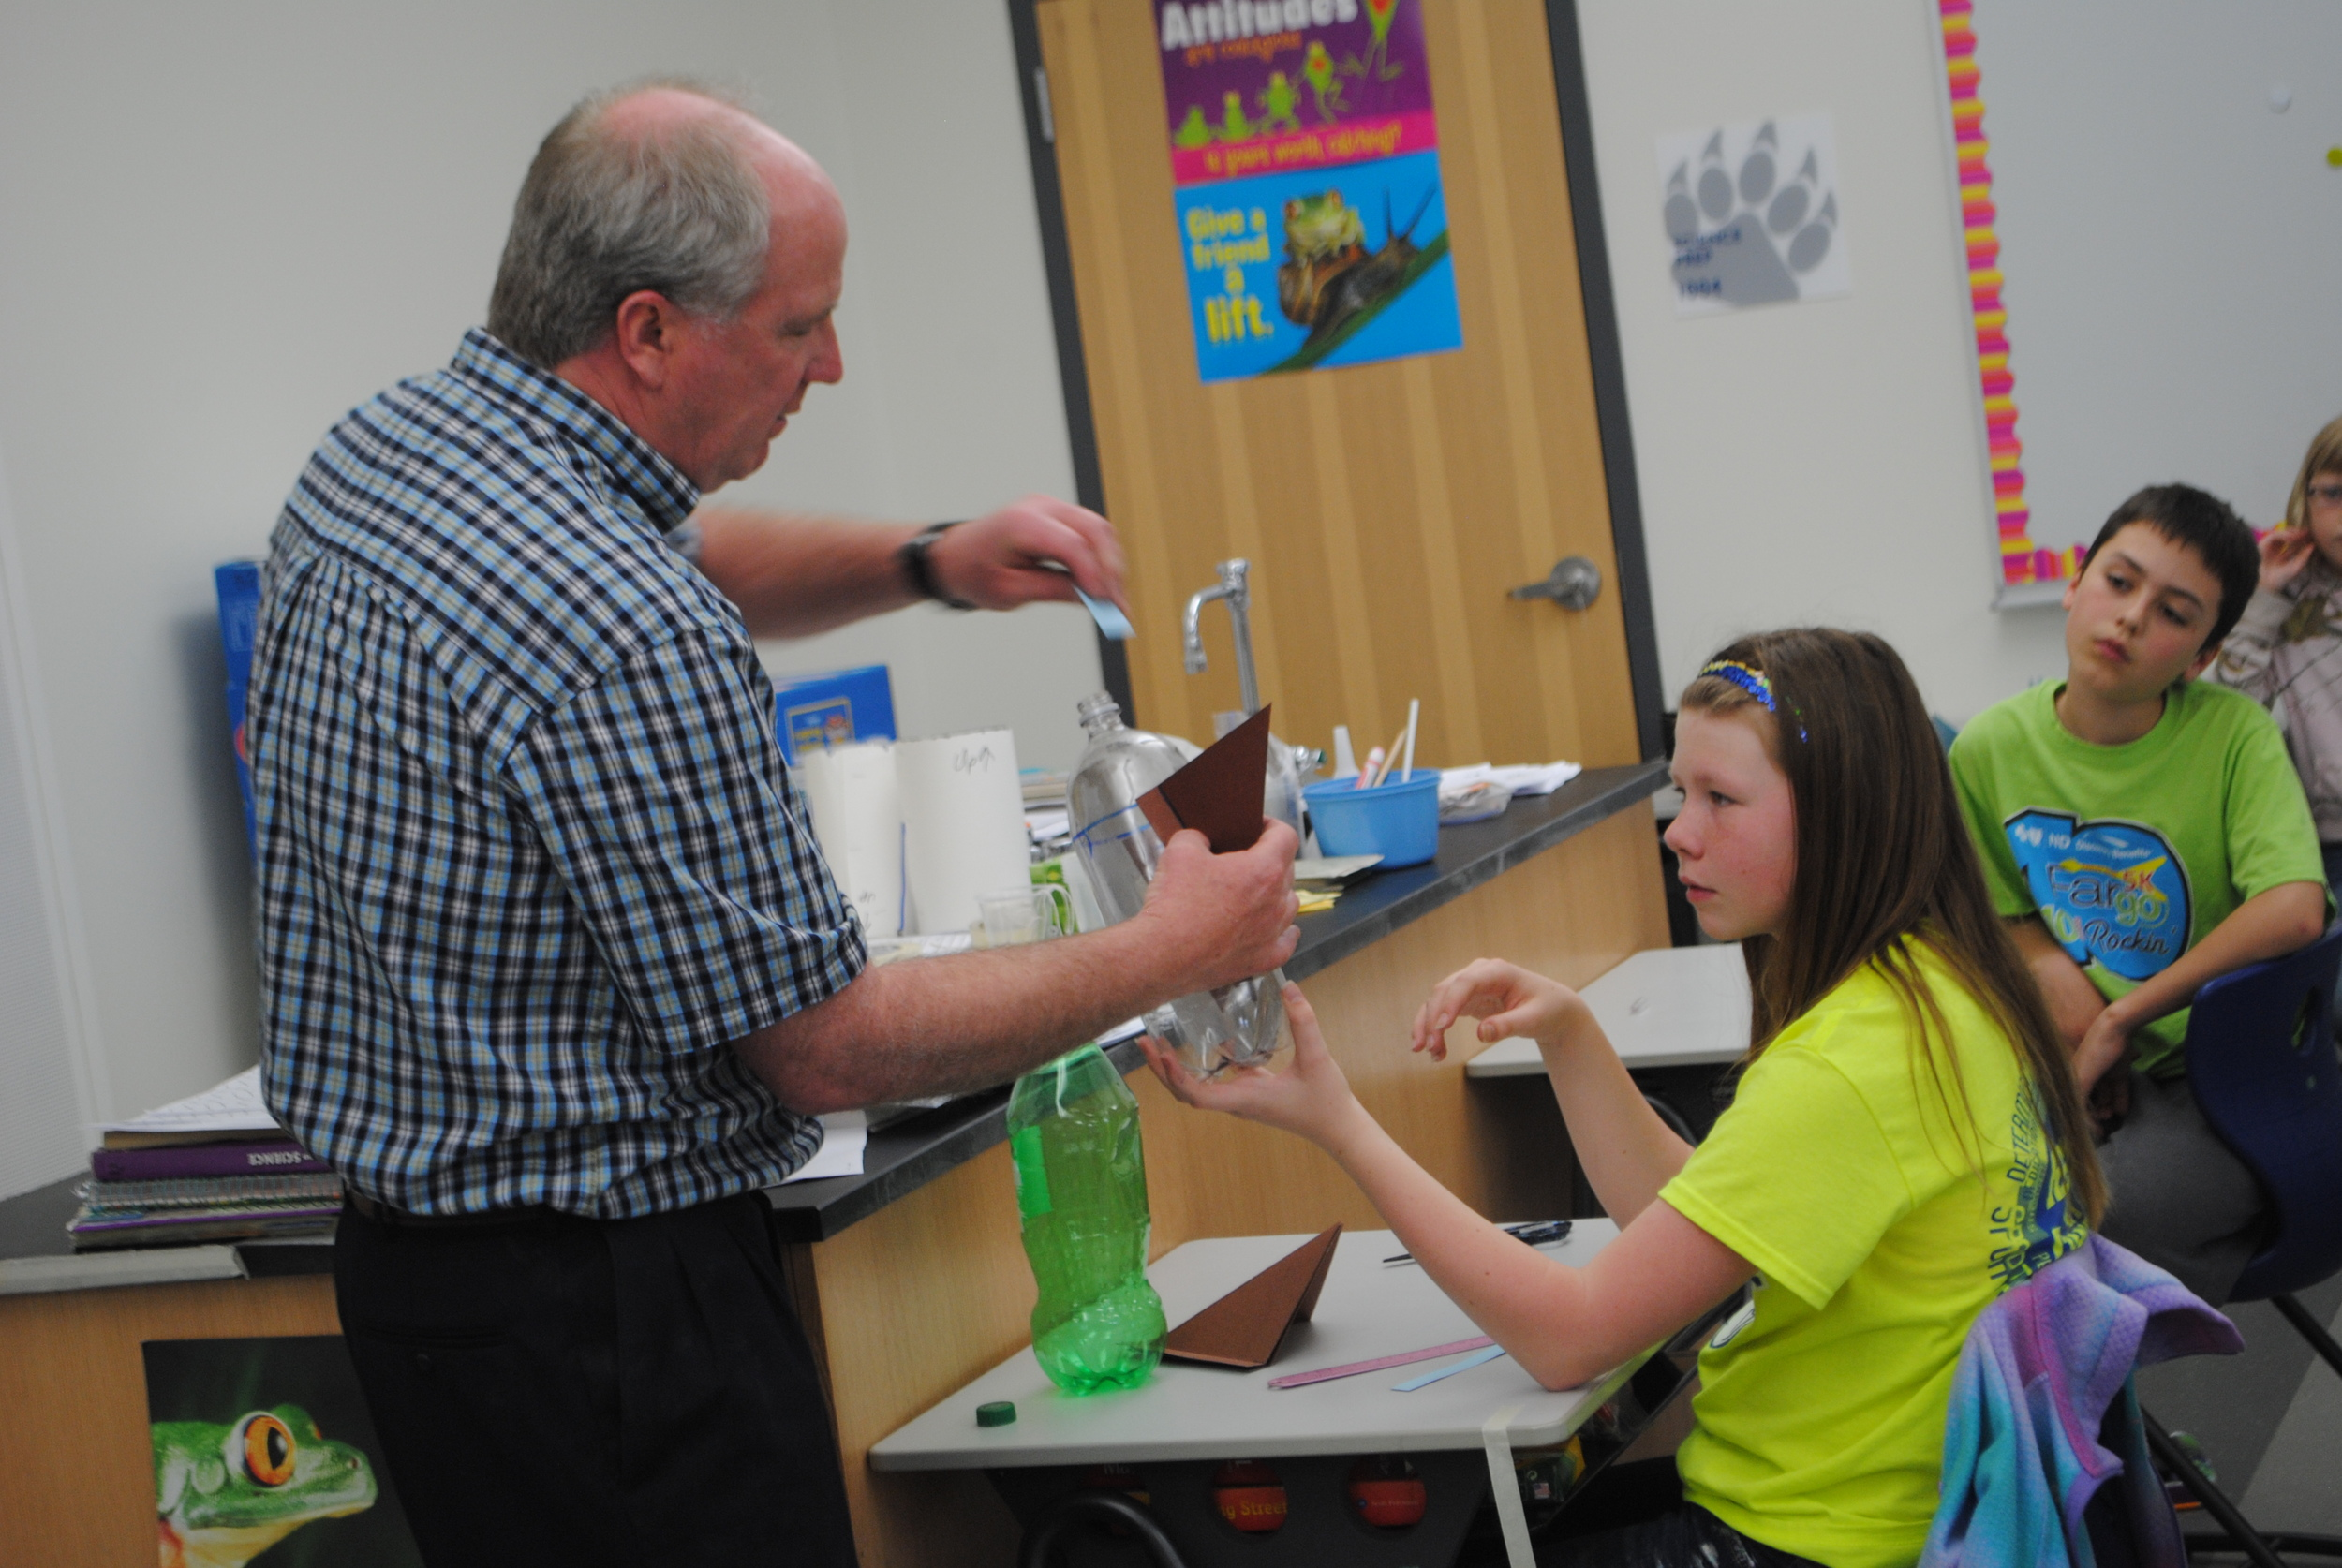 WDC fifth-grade teacher David Sea demonstrates how to put the fins on a 2-liter pop bottle during science class. Students Taliah Brown and Tony Kreklau listen to Mr. Sea's instructions. (Photos by Dana Pavek, WDC Schools)